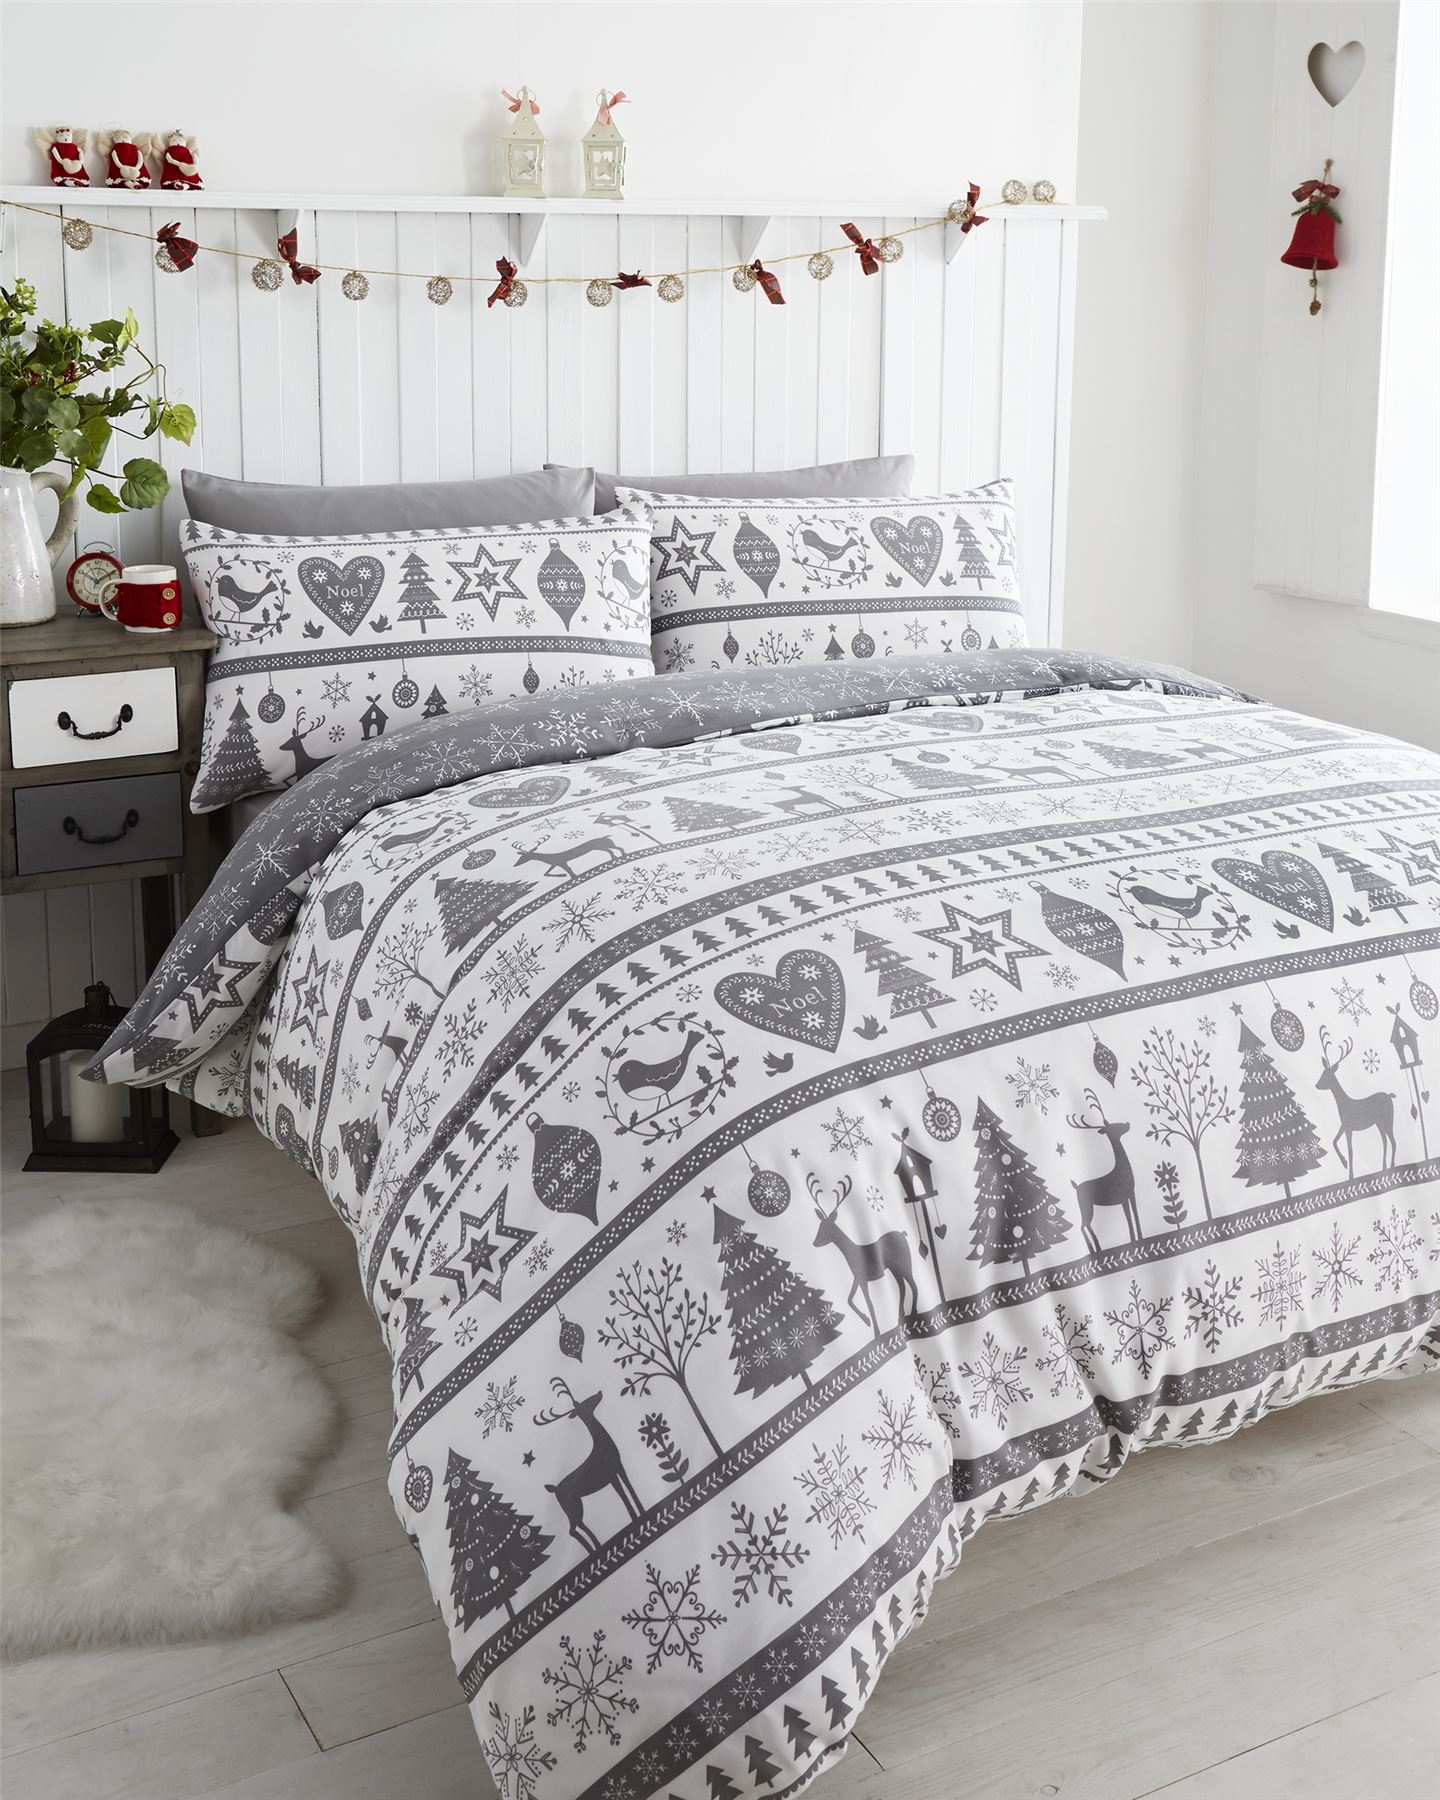 christmas hohoho count bedding products bed set duvet